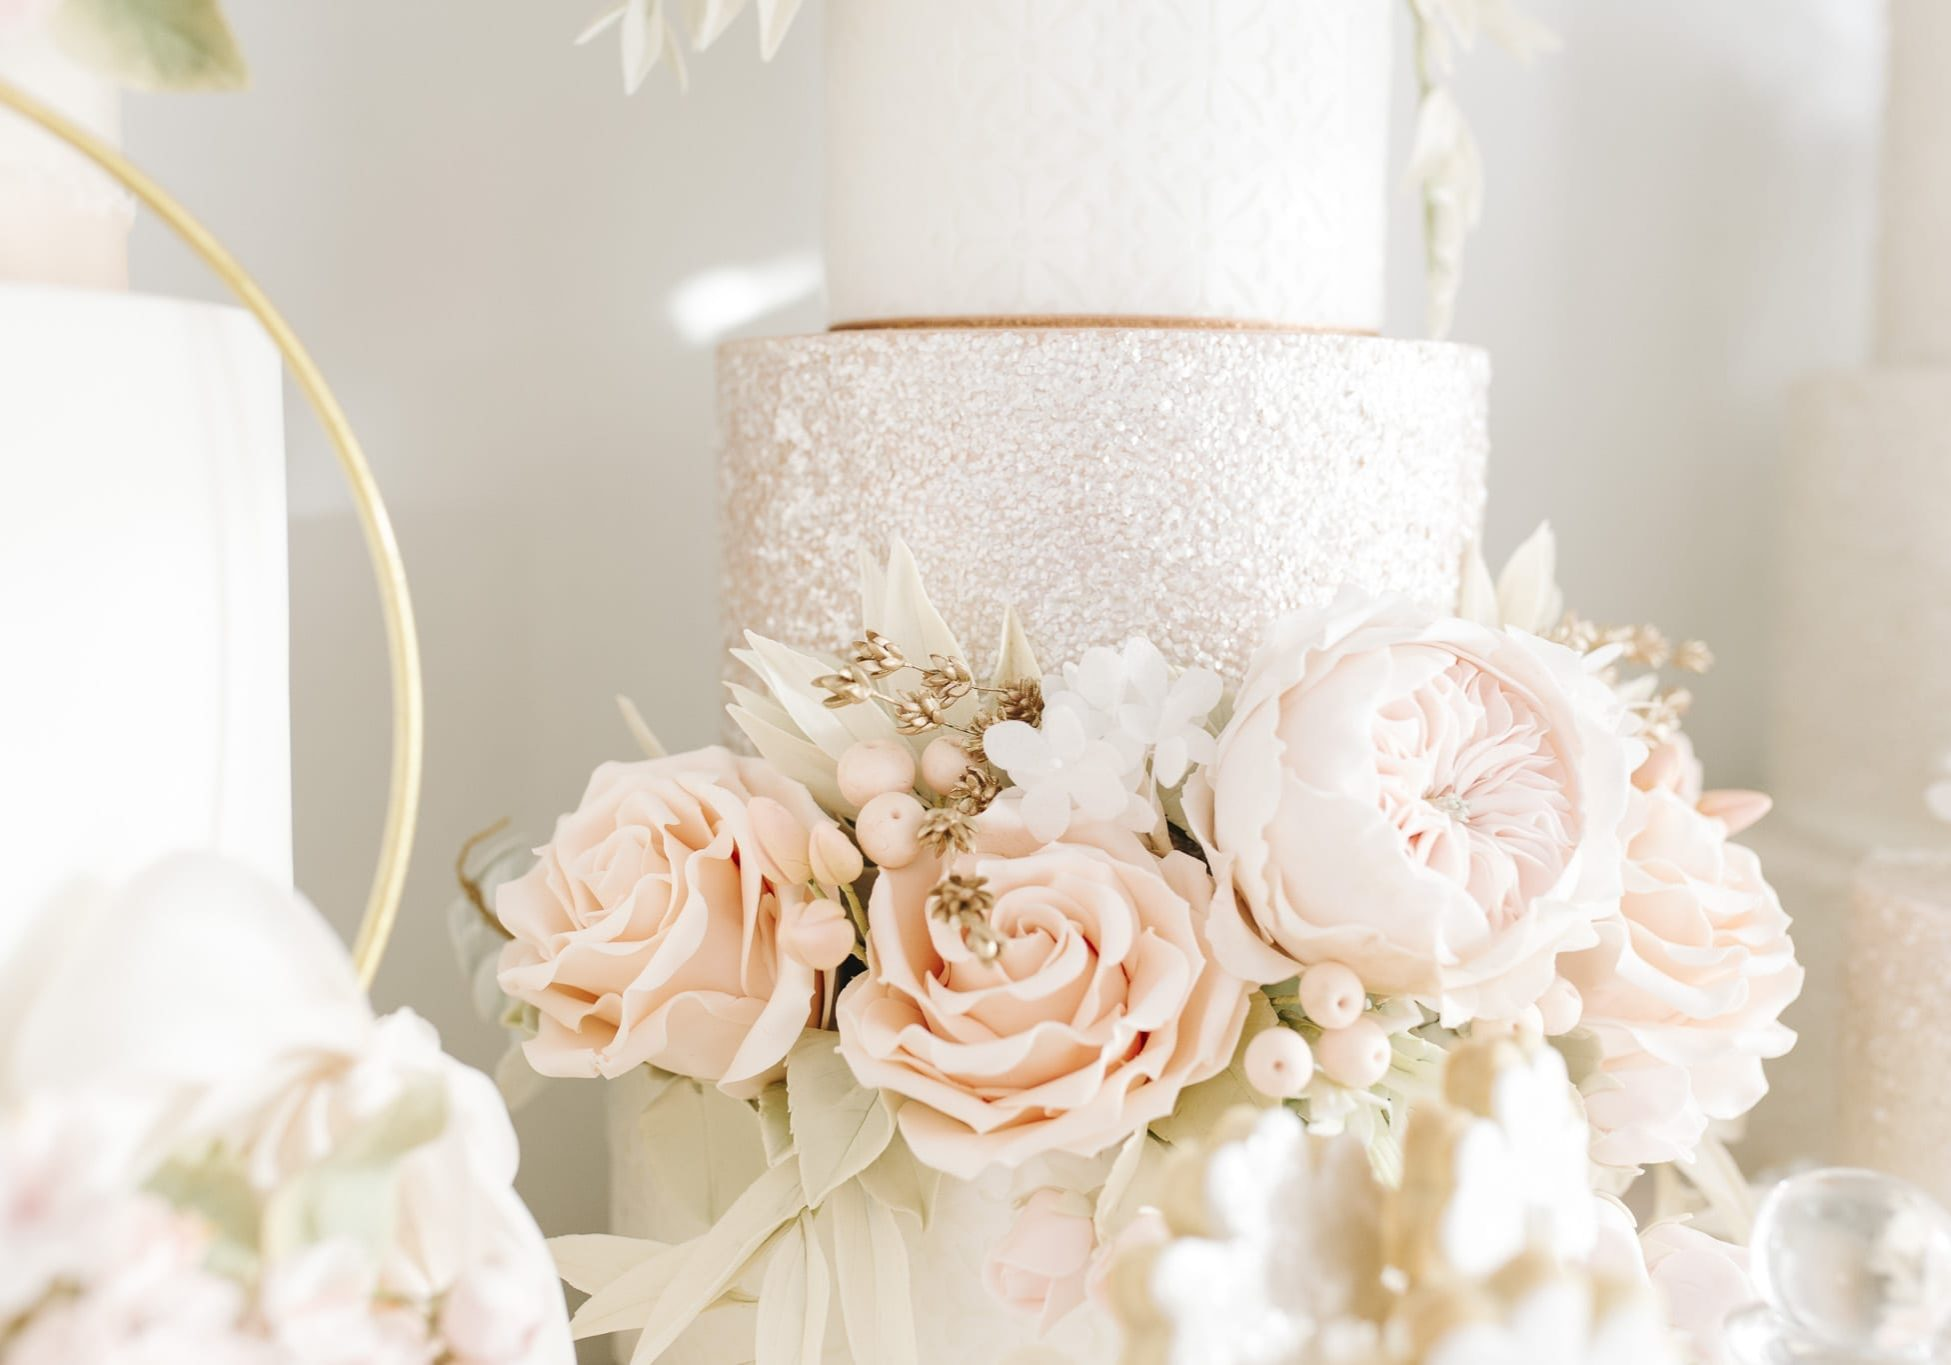 Luxury wedding cake from Hayley Elizabeth Cake Design, sugar flower peonies, foliage, sugar roses and rose gold shimmer. Fondant icing, textured wedding cake, dessert table, wedding cake inspiration